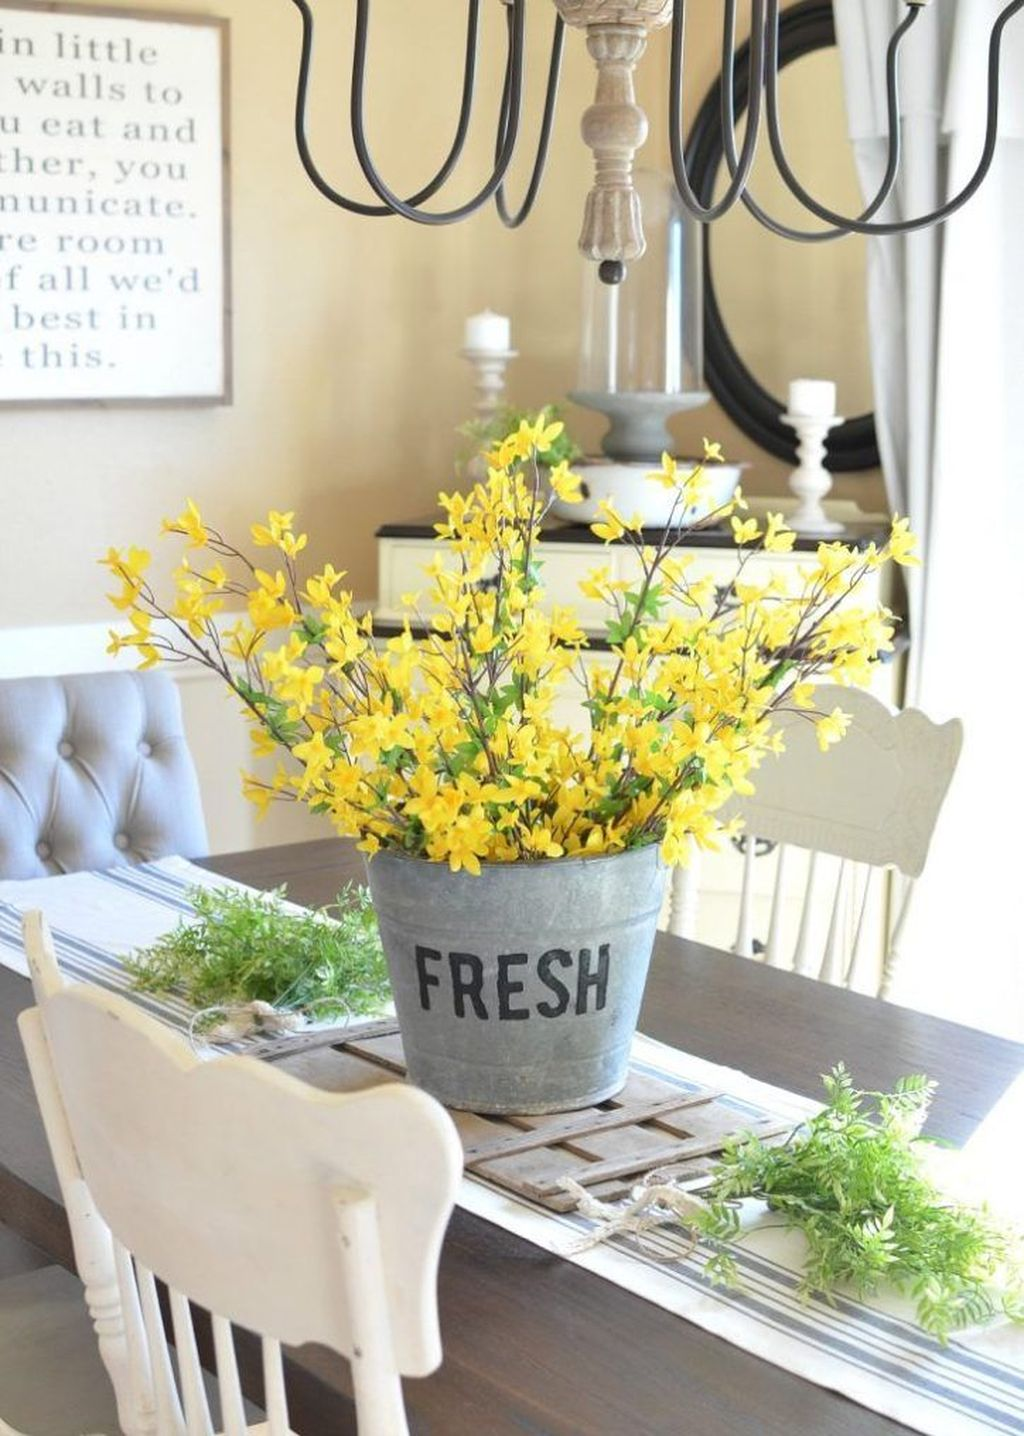 Popular DIY Spring Decor Ideas With Rustic Style 25